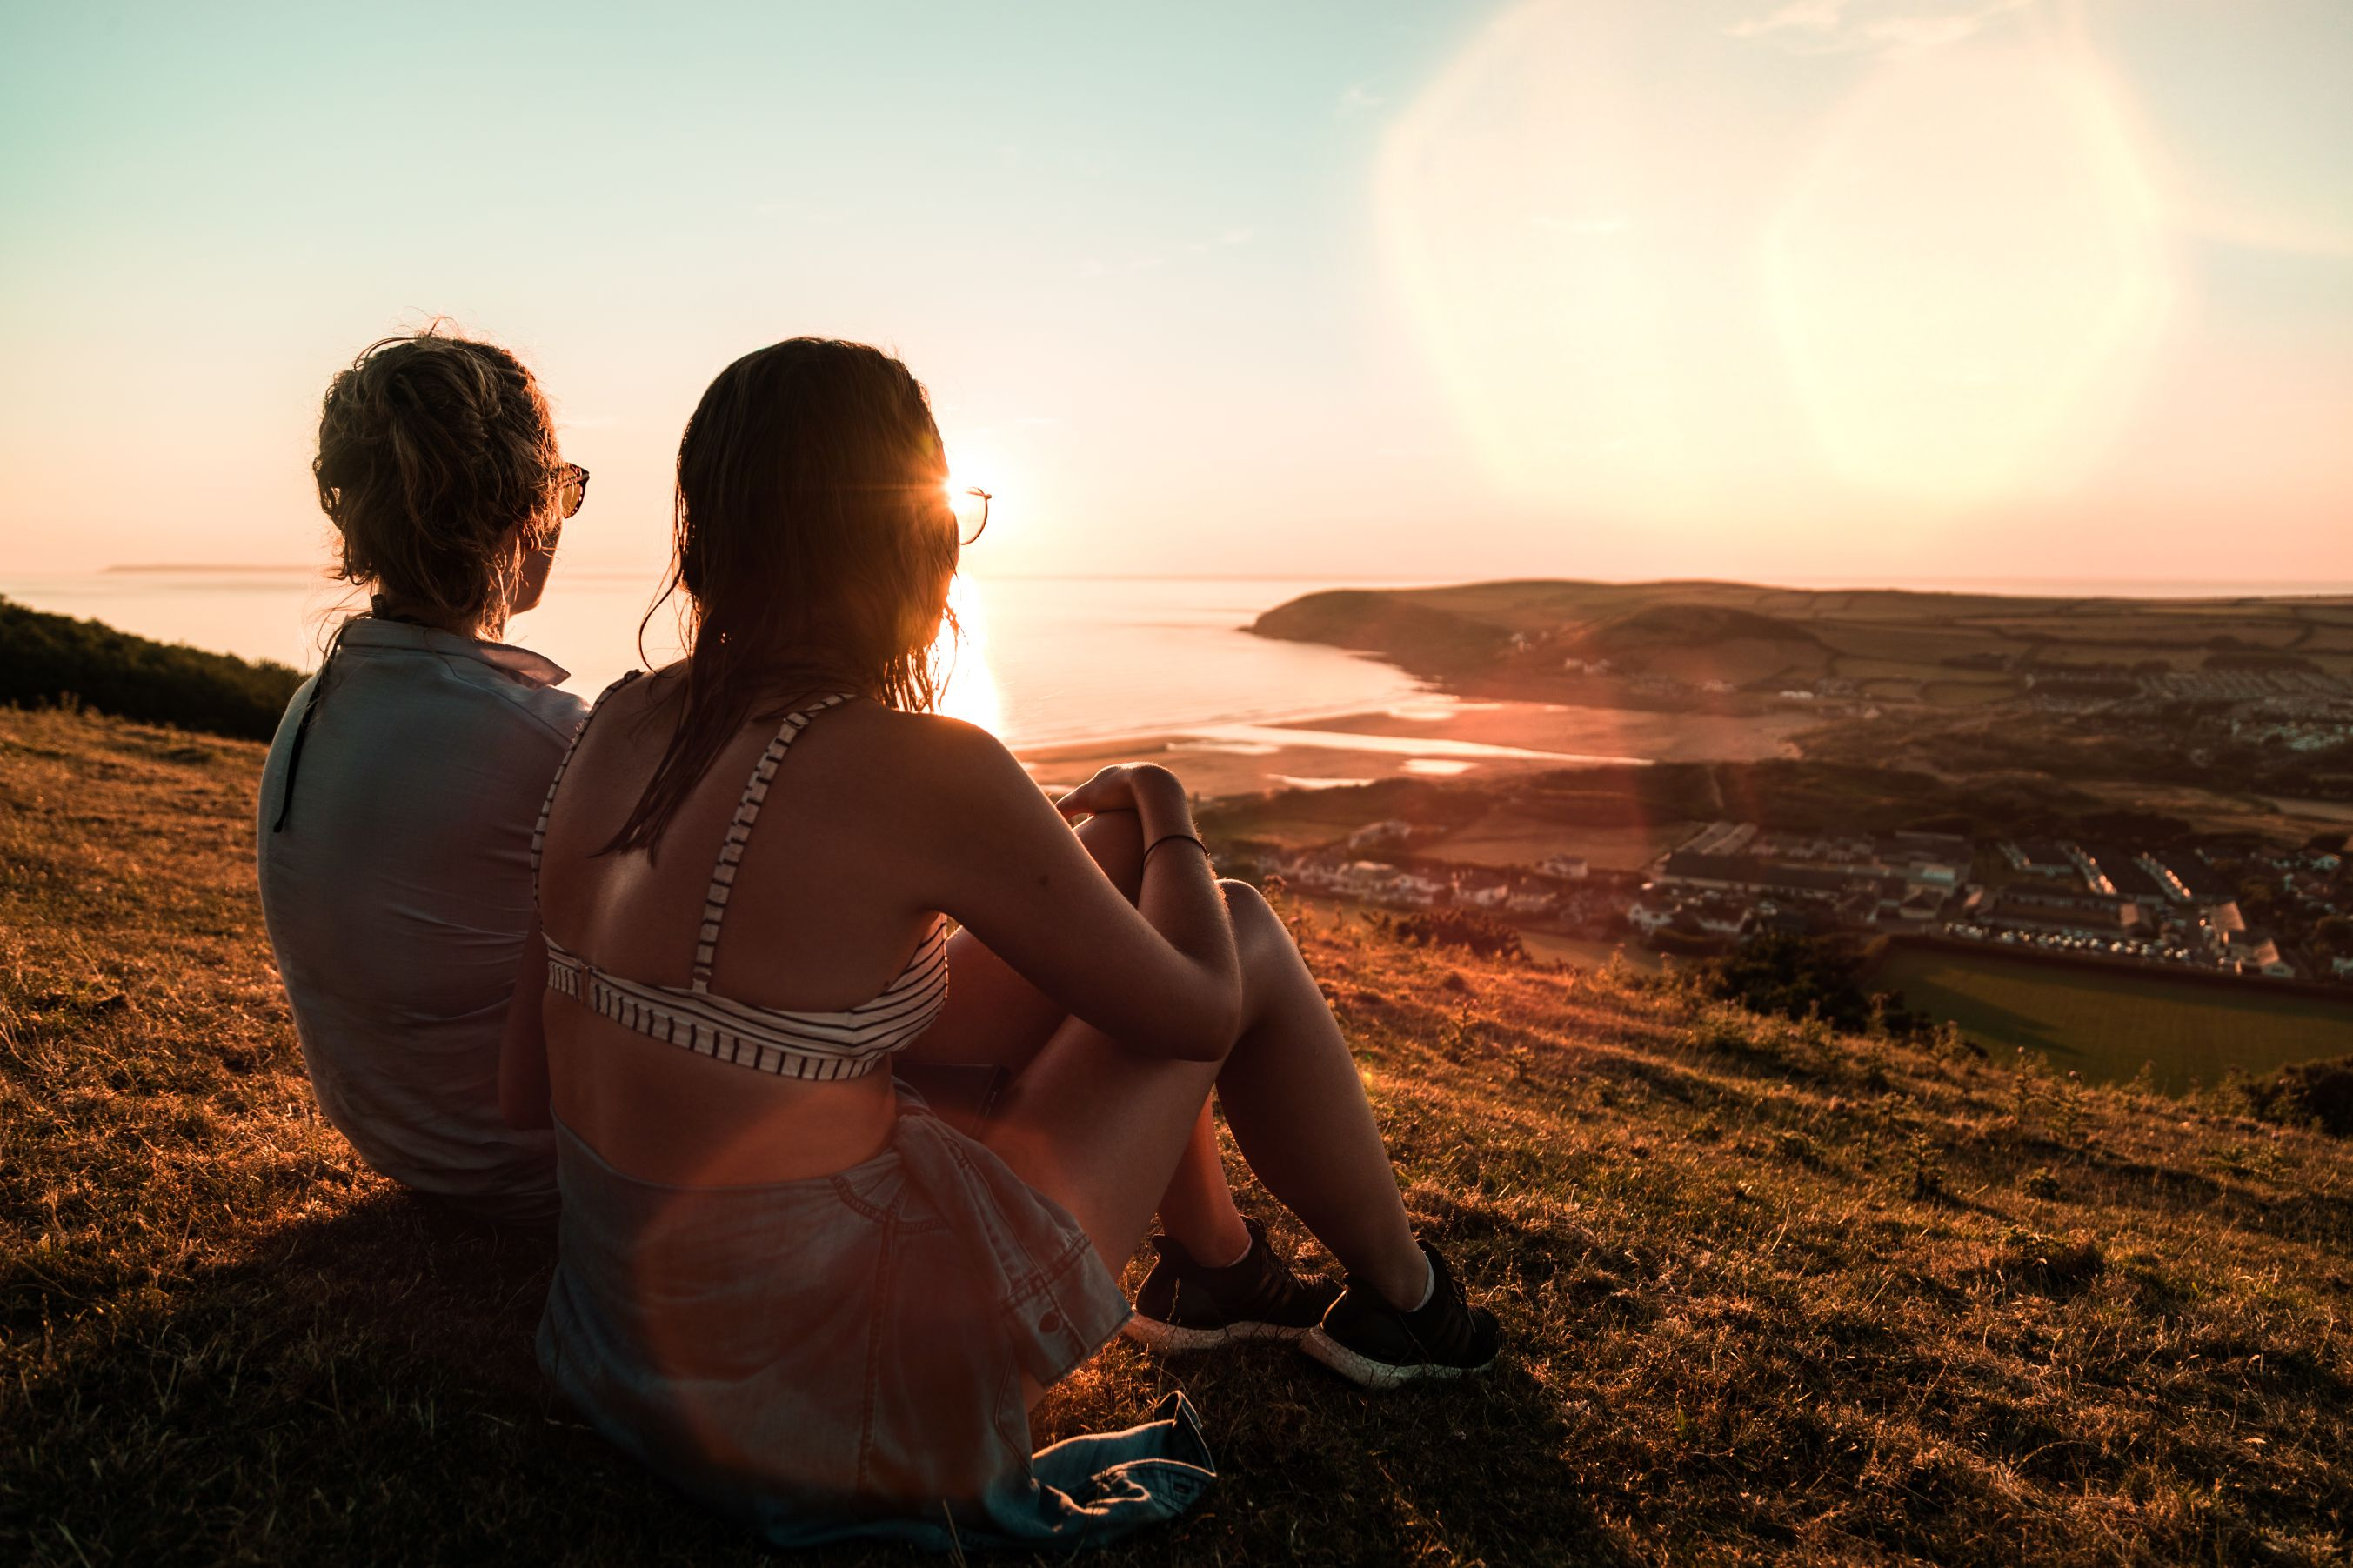 Two girls sitting on hillside looking over seaside village.